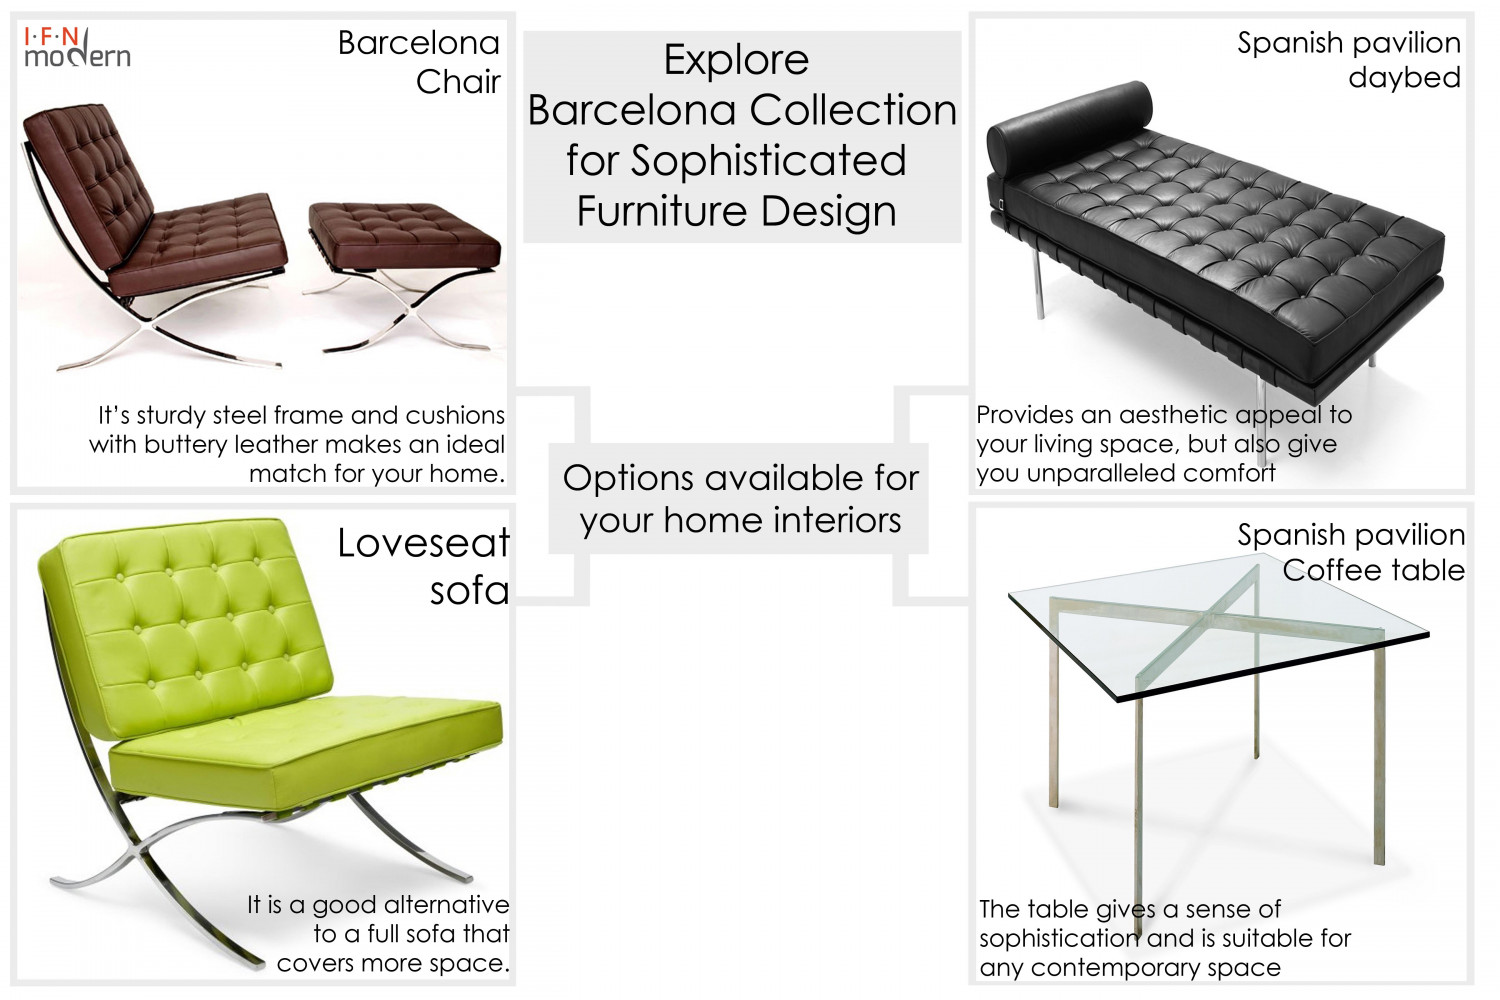 Florence Knoll Furniture Makes a Perfect Fit for Modern Interior Space Infographic